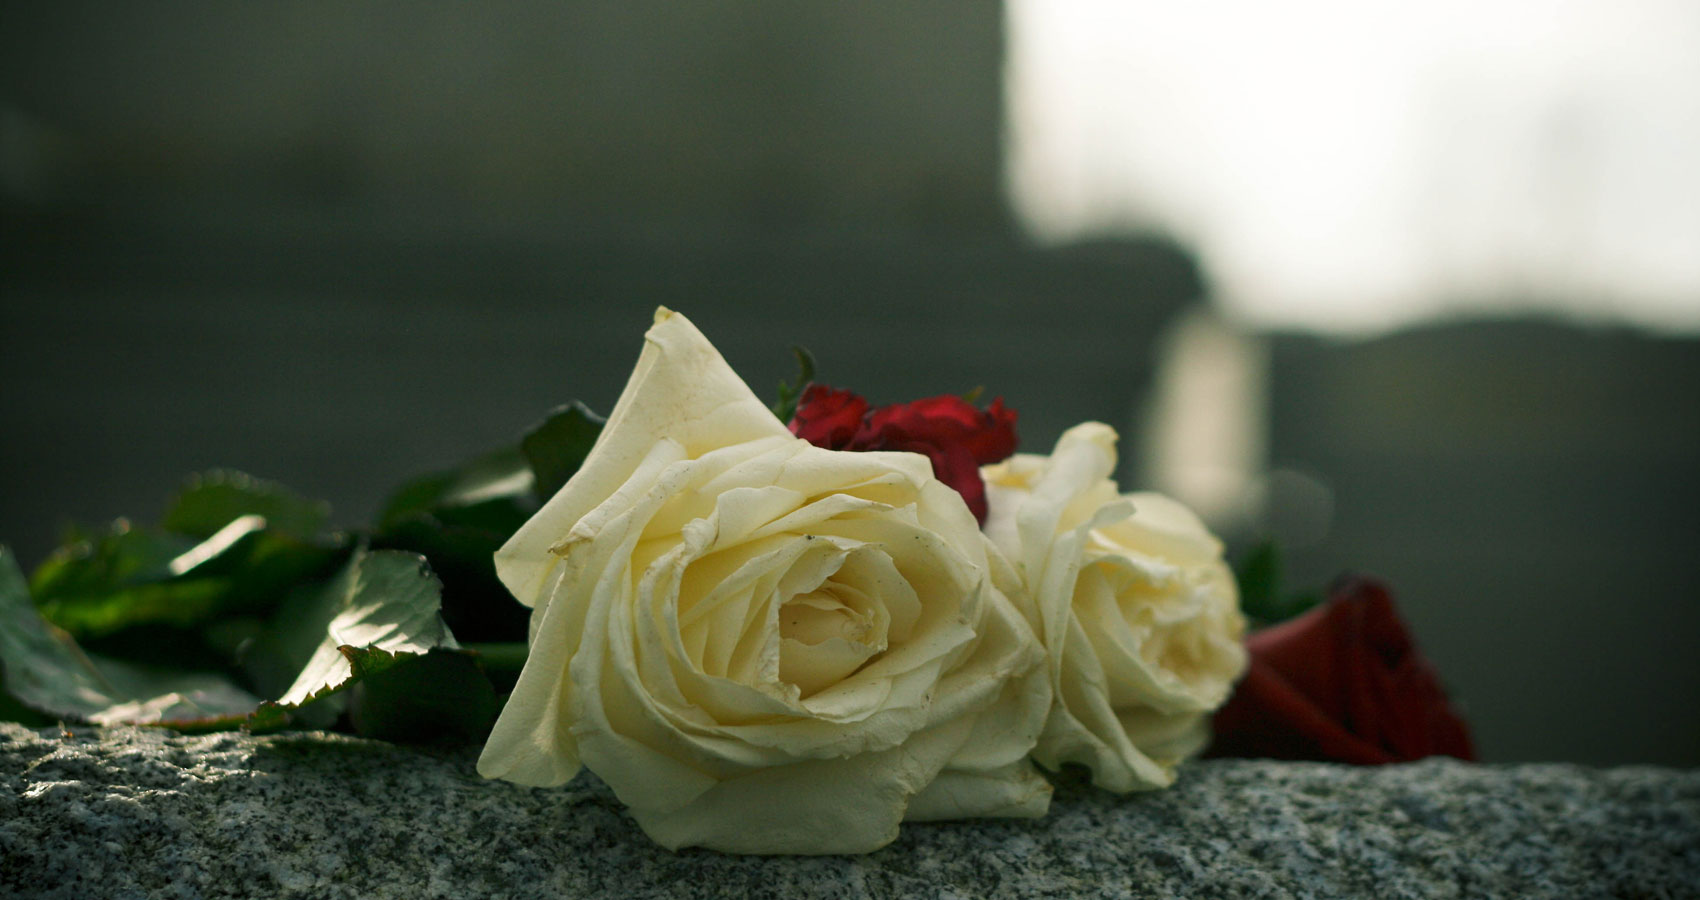 The Grave and The Rose at Spillwords.com